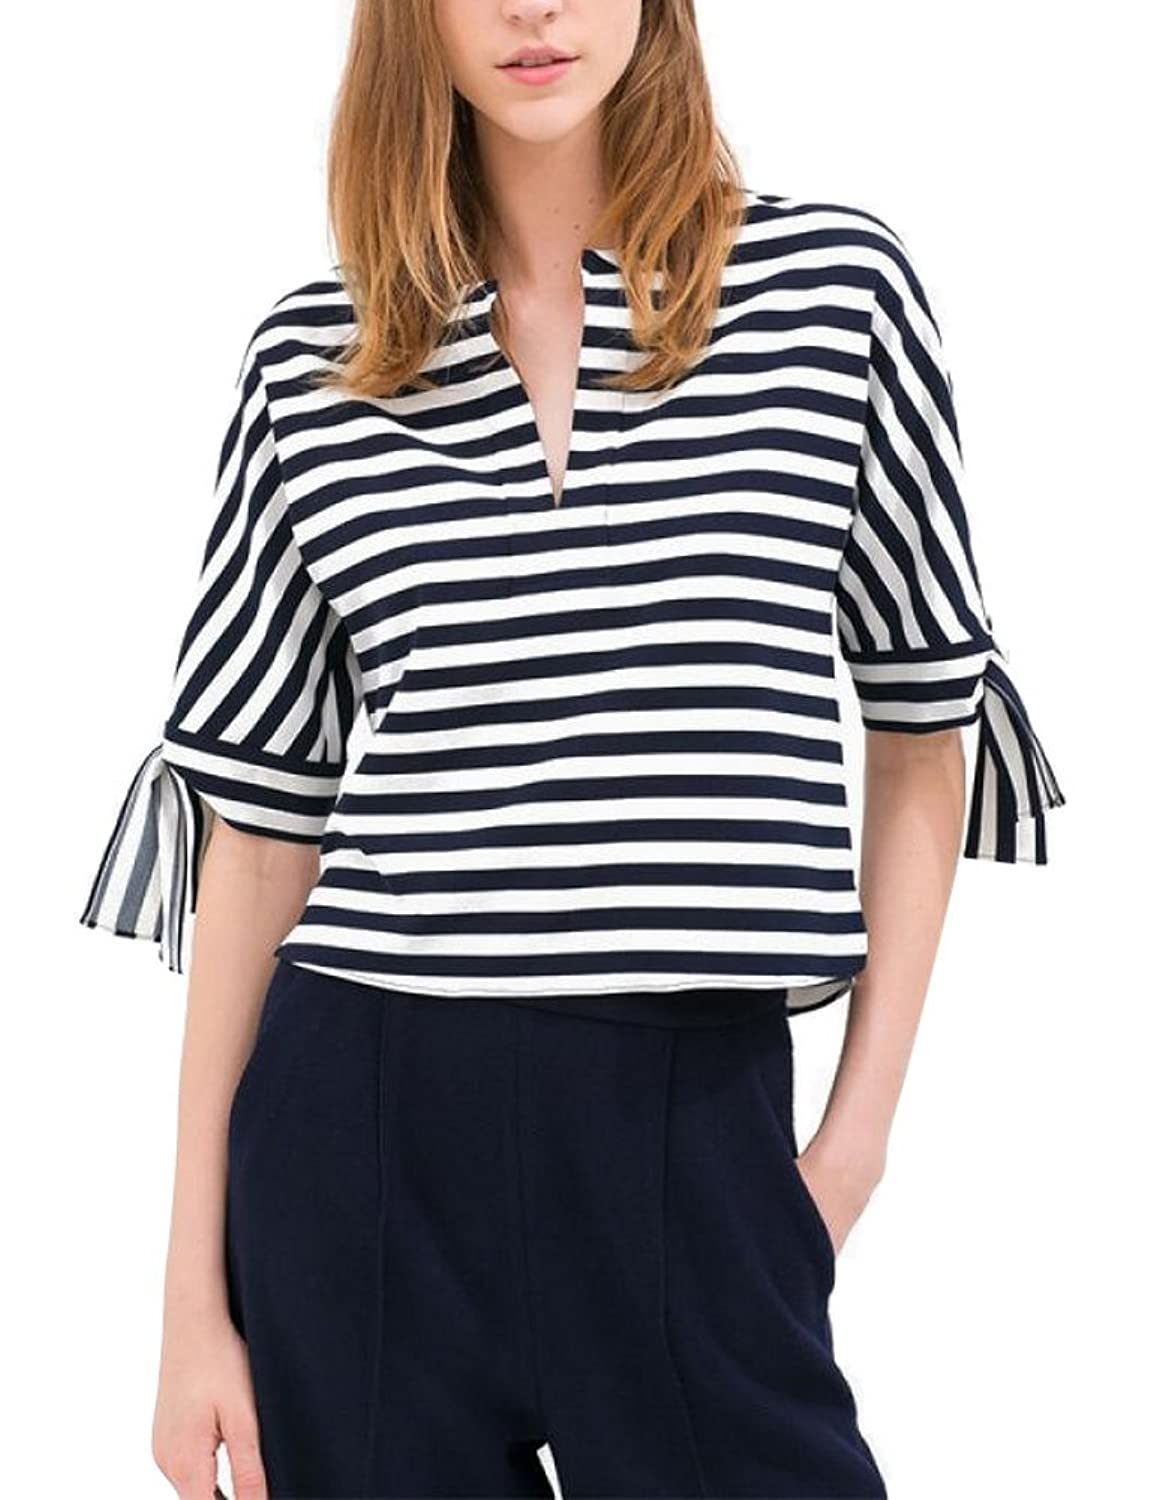 Allbebe Semi Open-Necked Blue And White Striped Fifth Sleeve Shirts